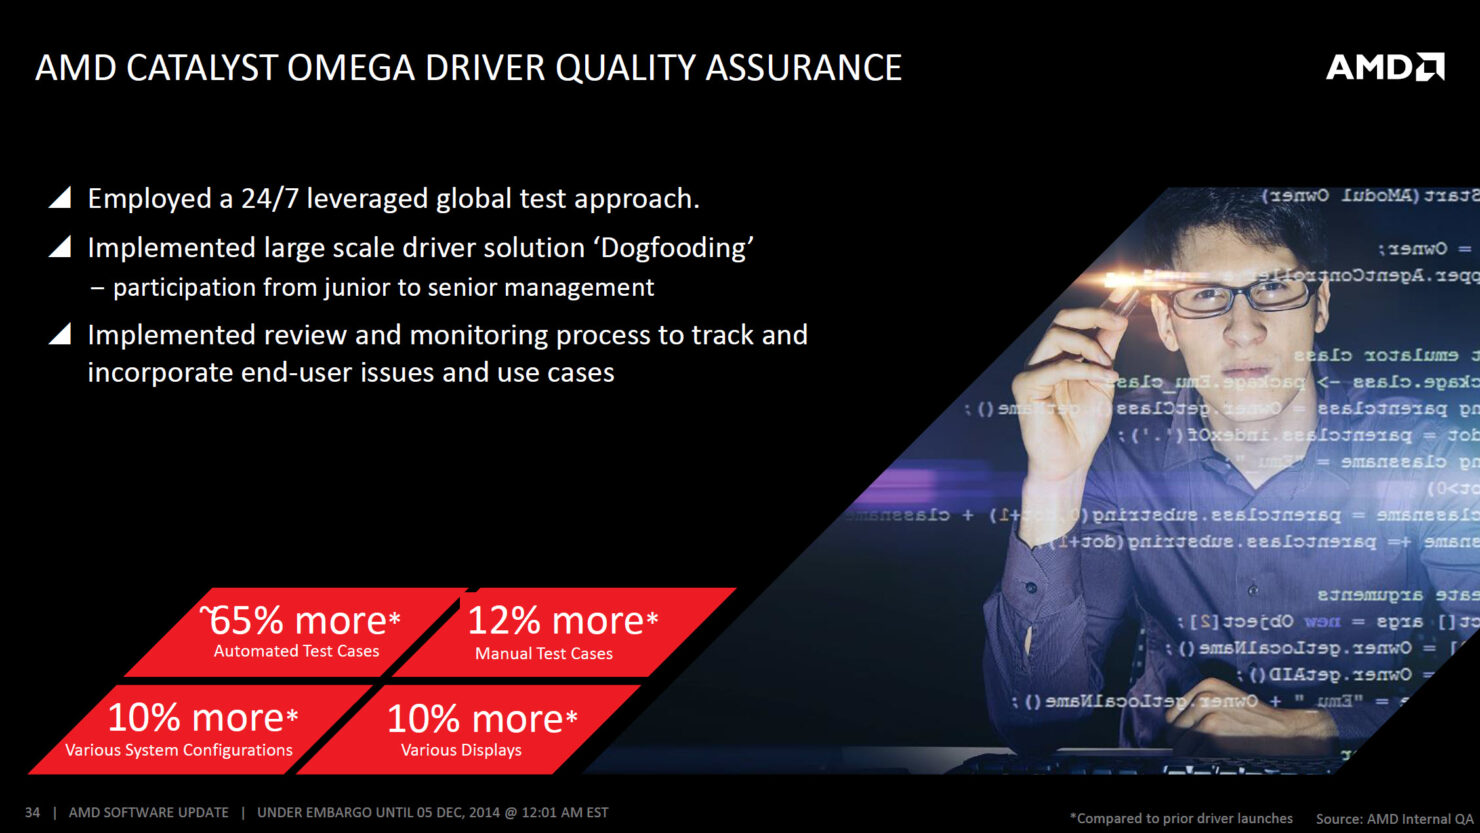 amd-catalyst-omega-driver-14-50_driver-quality-assurance